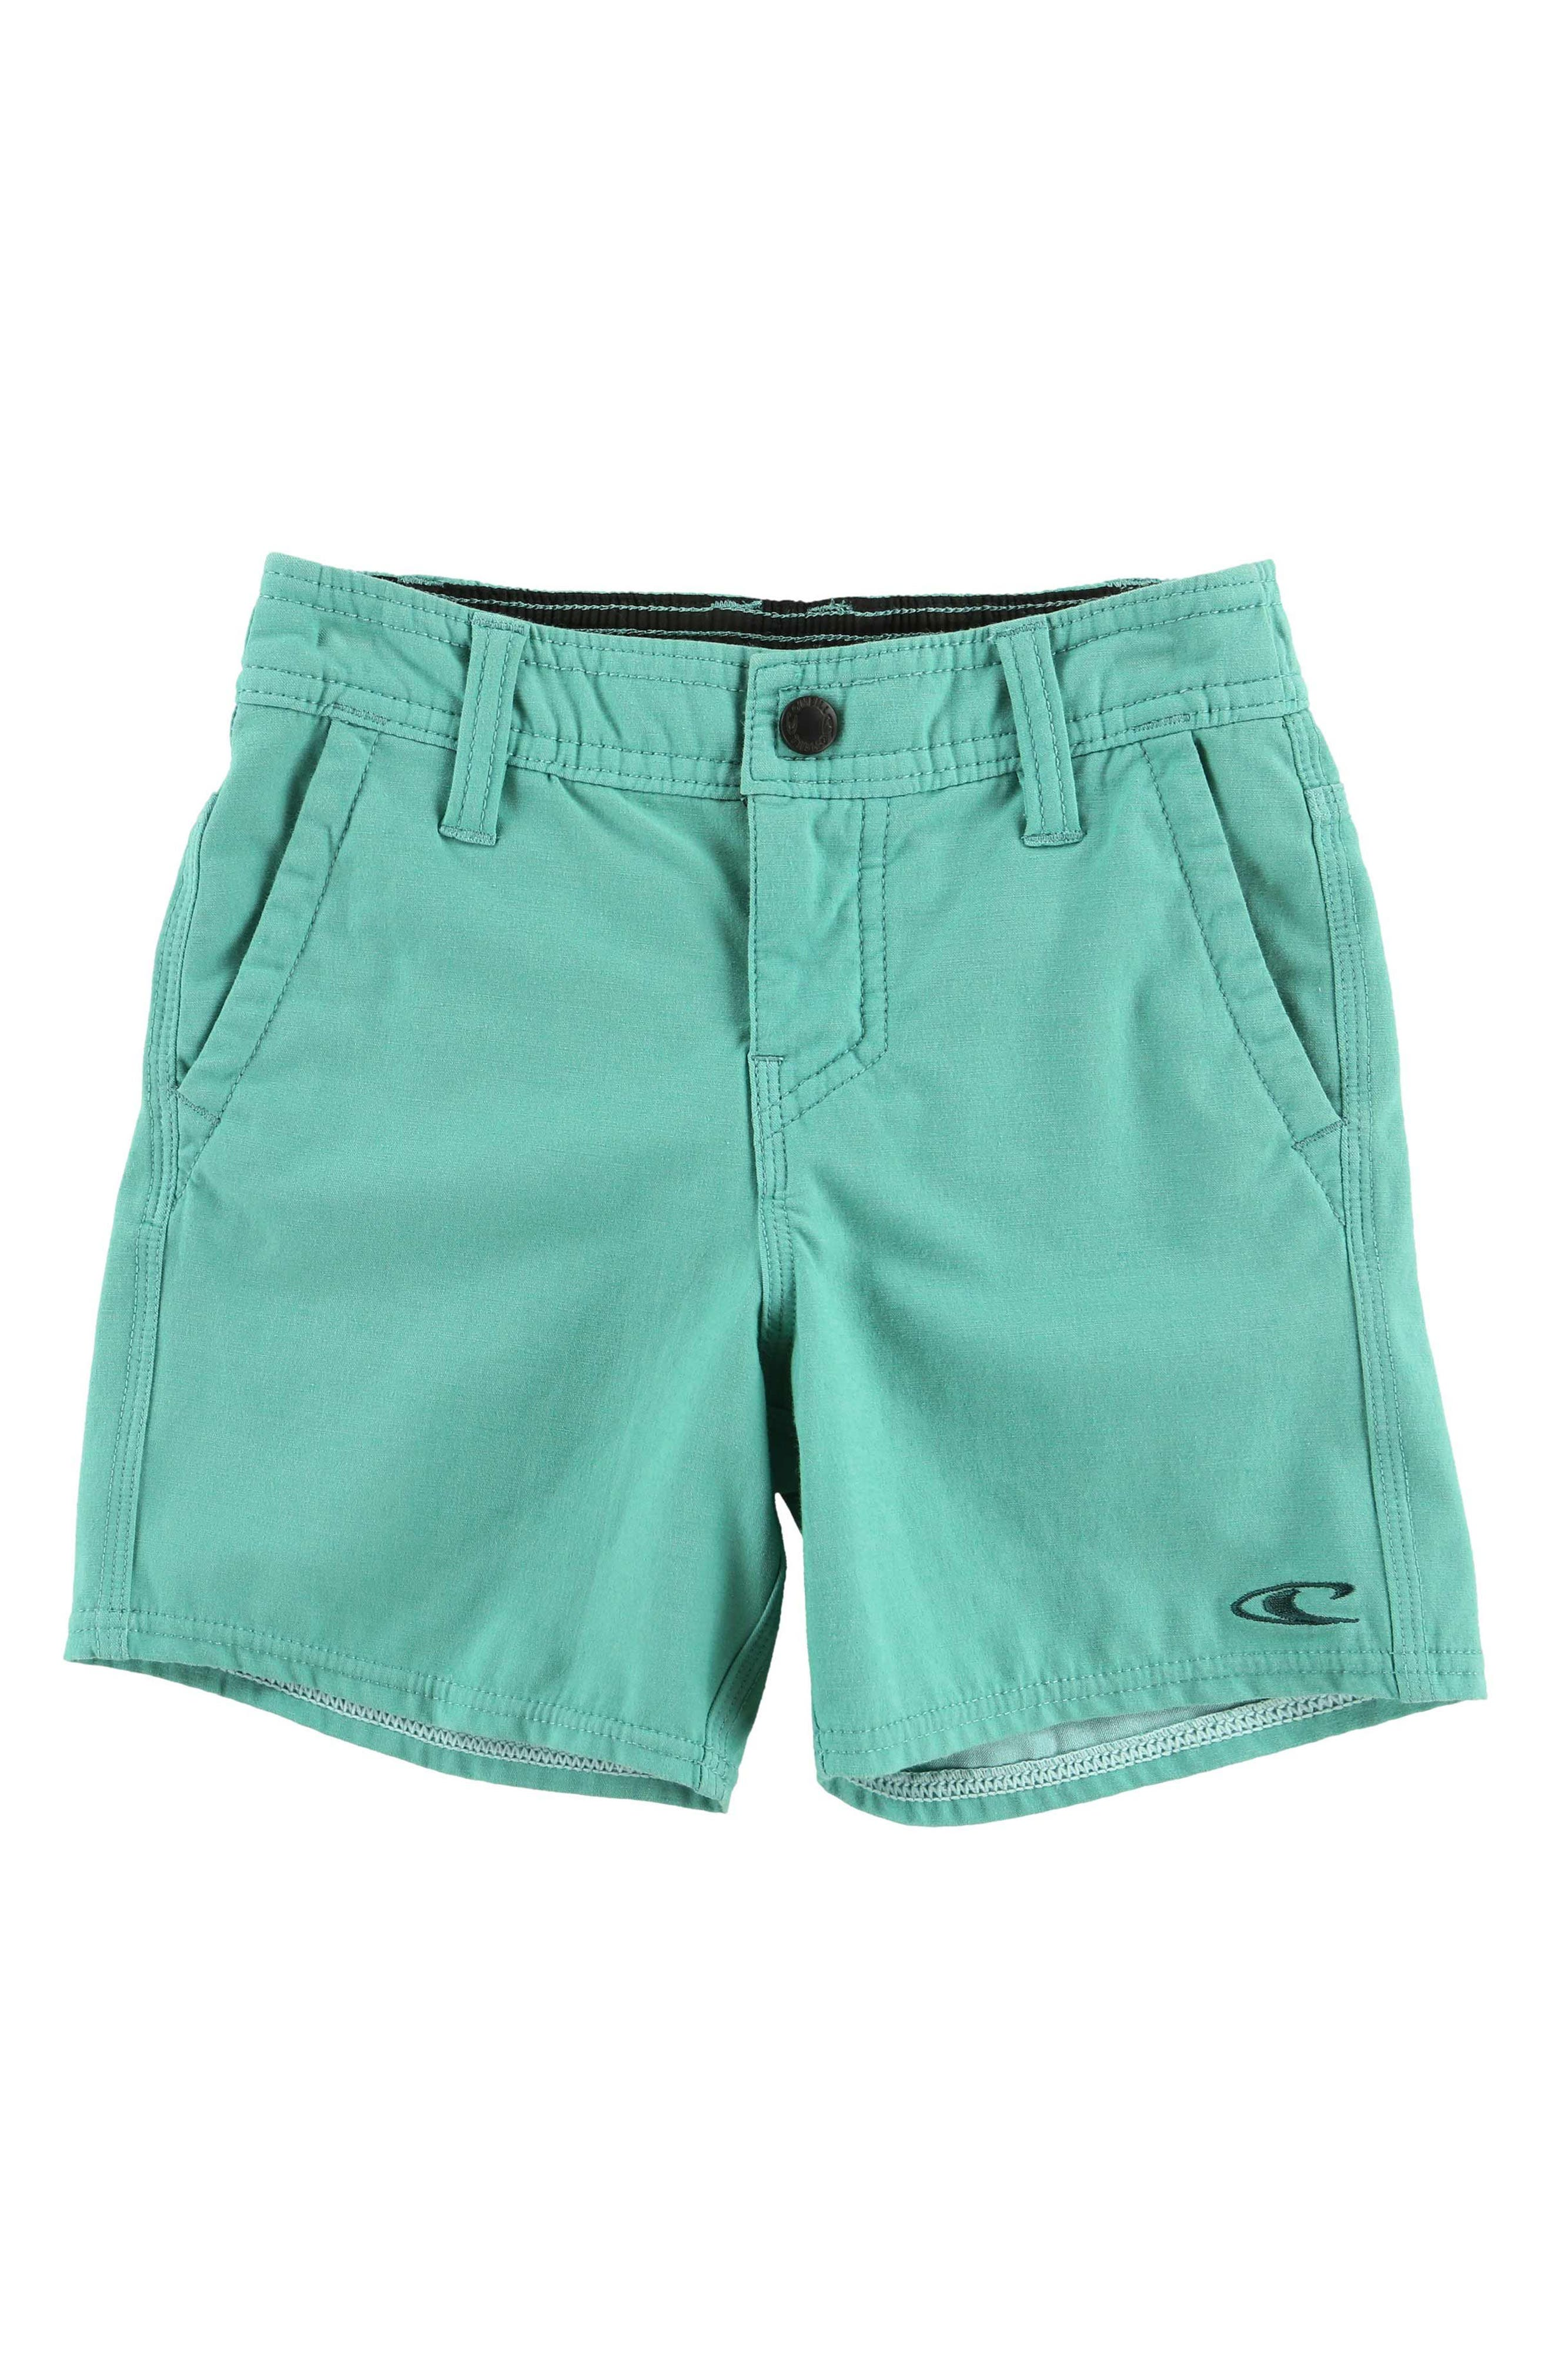 Locked Hybrid Board Shorts,                             Main thumbnail 1, color,                             Jade